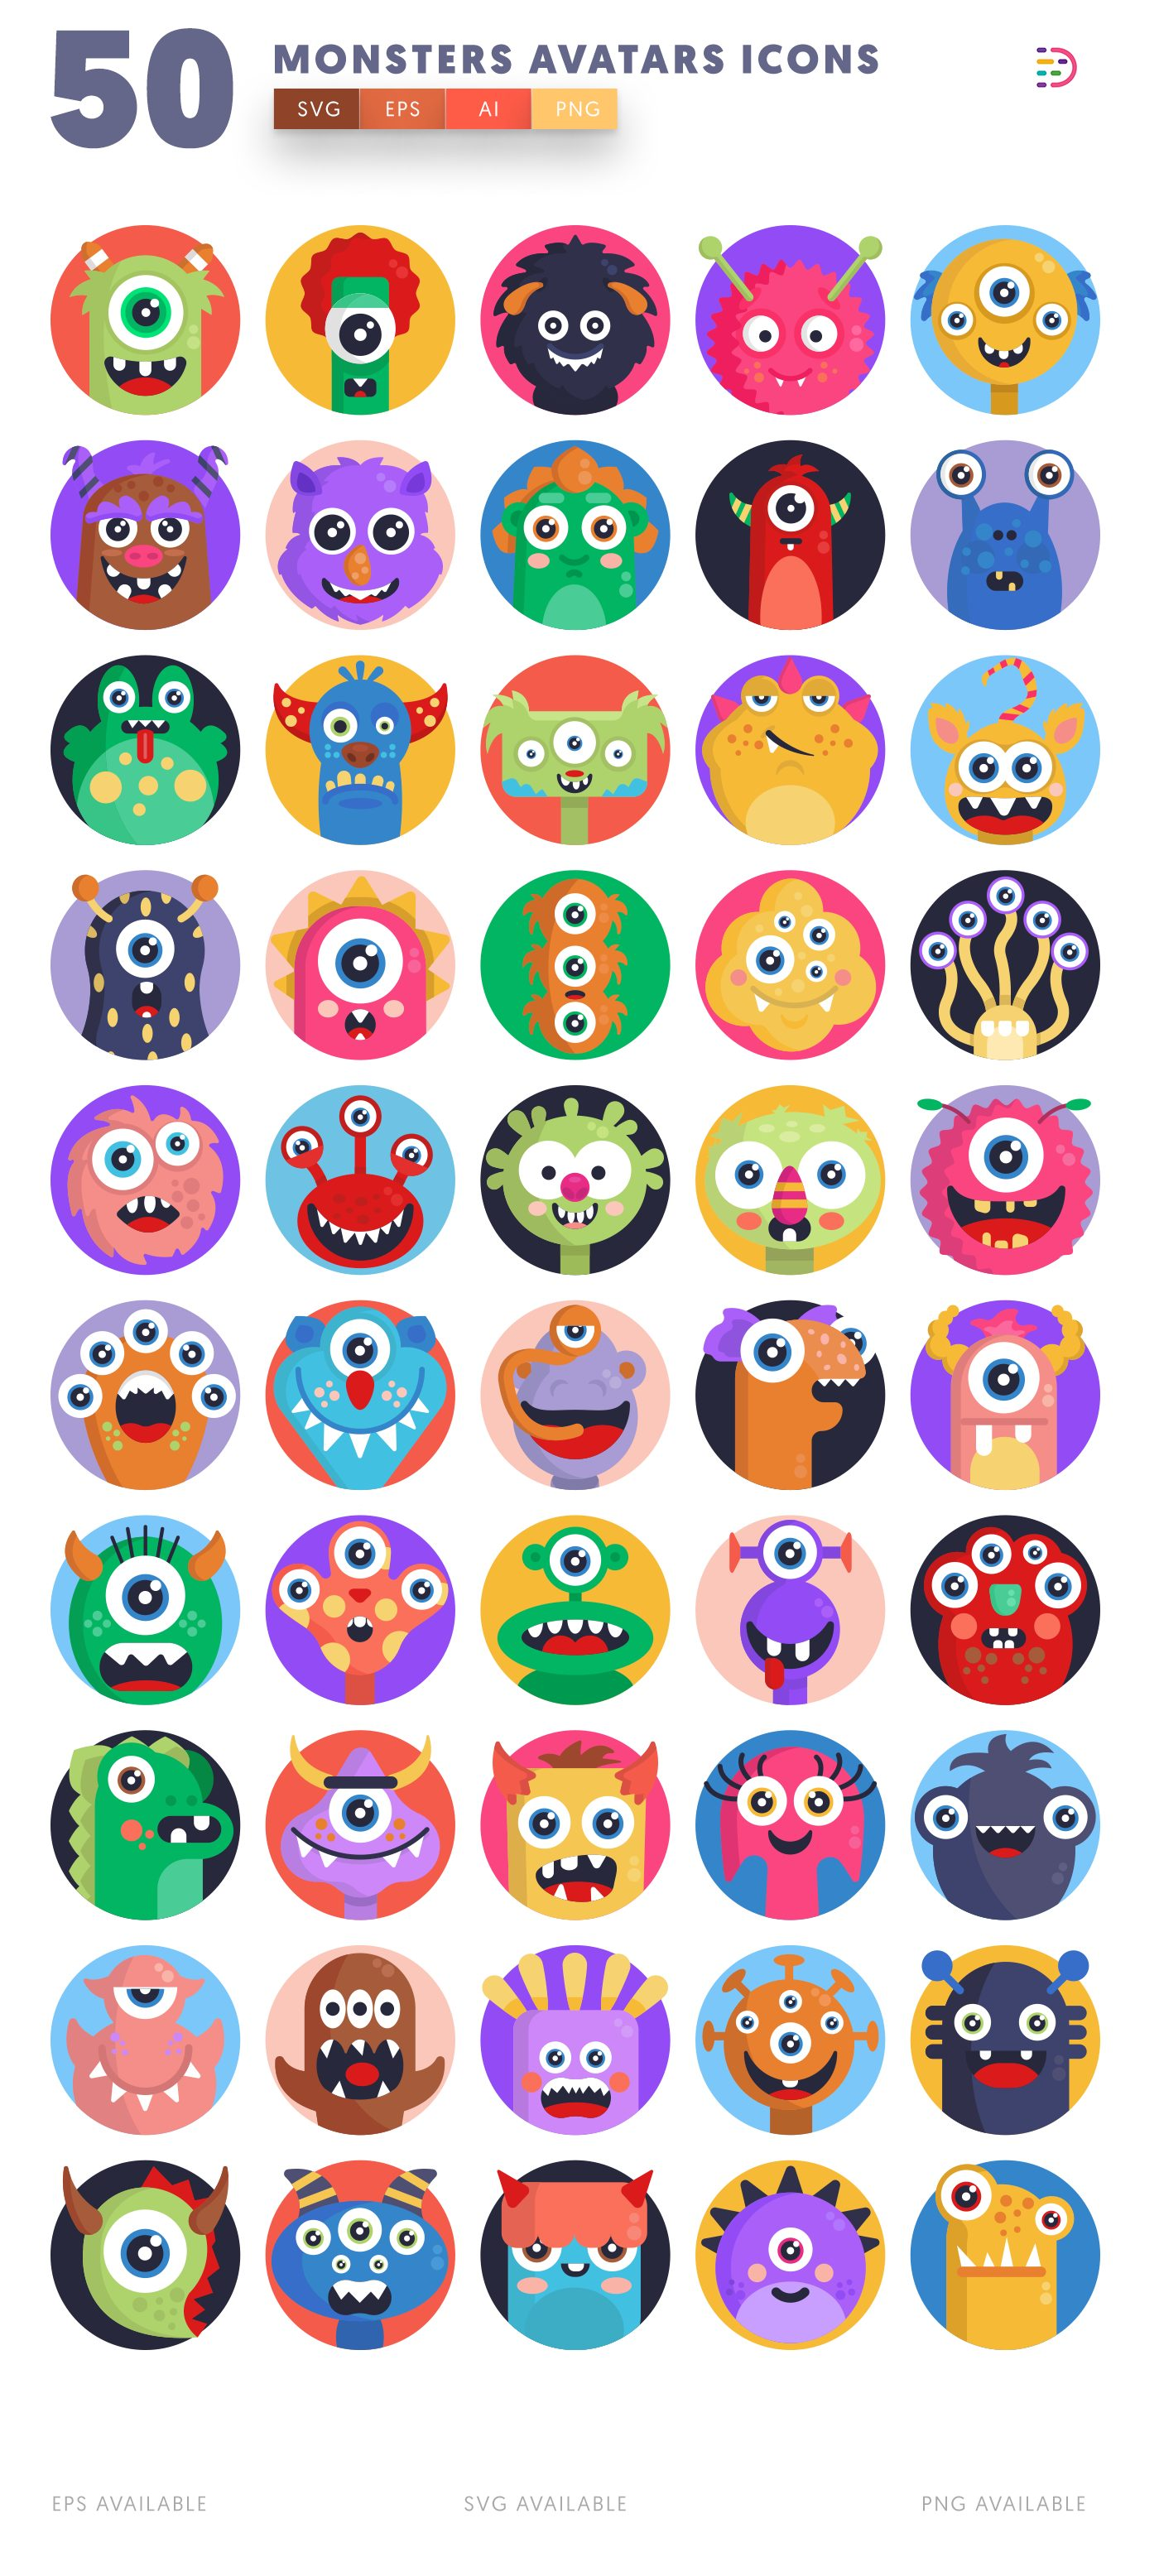 Monsters Avatars icon pack